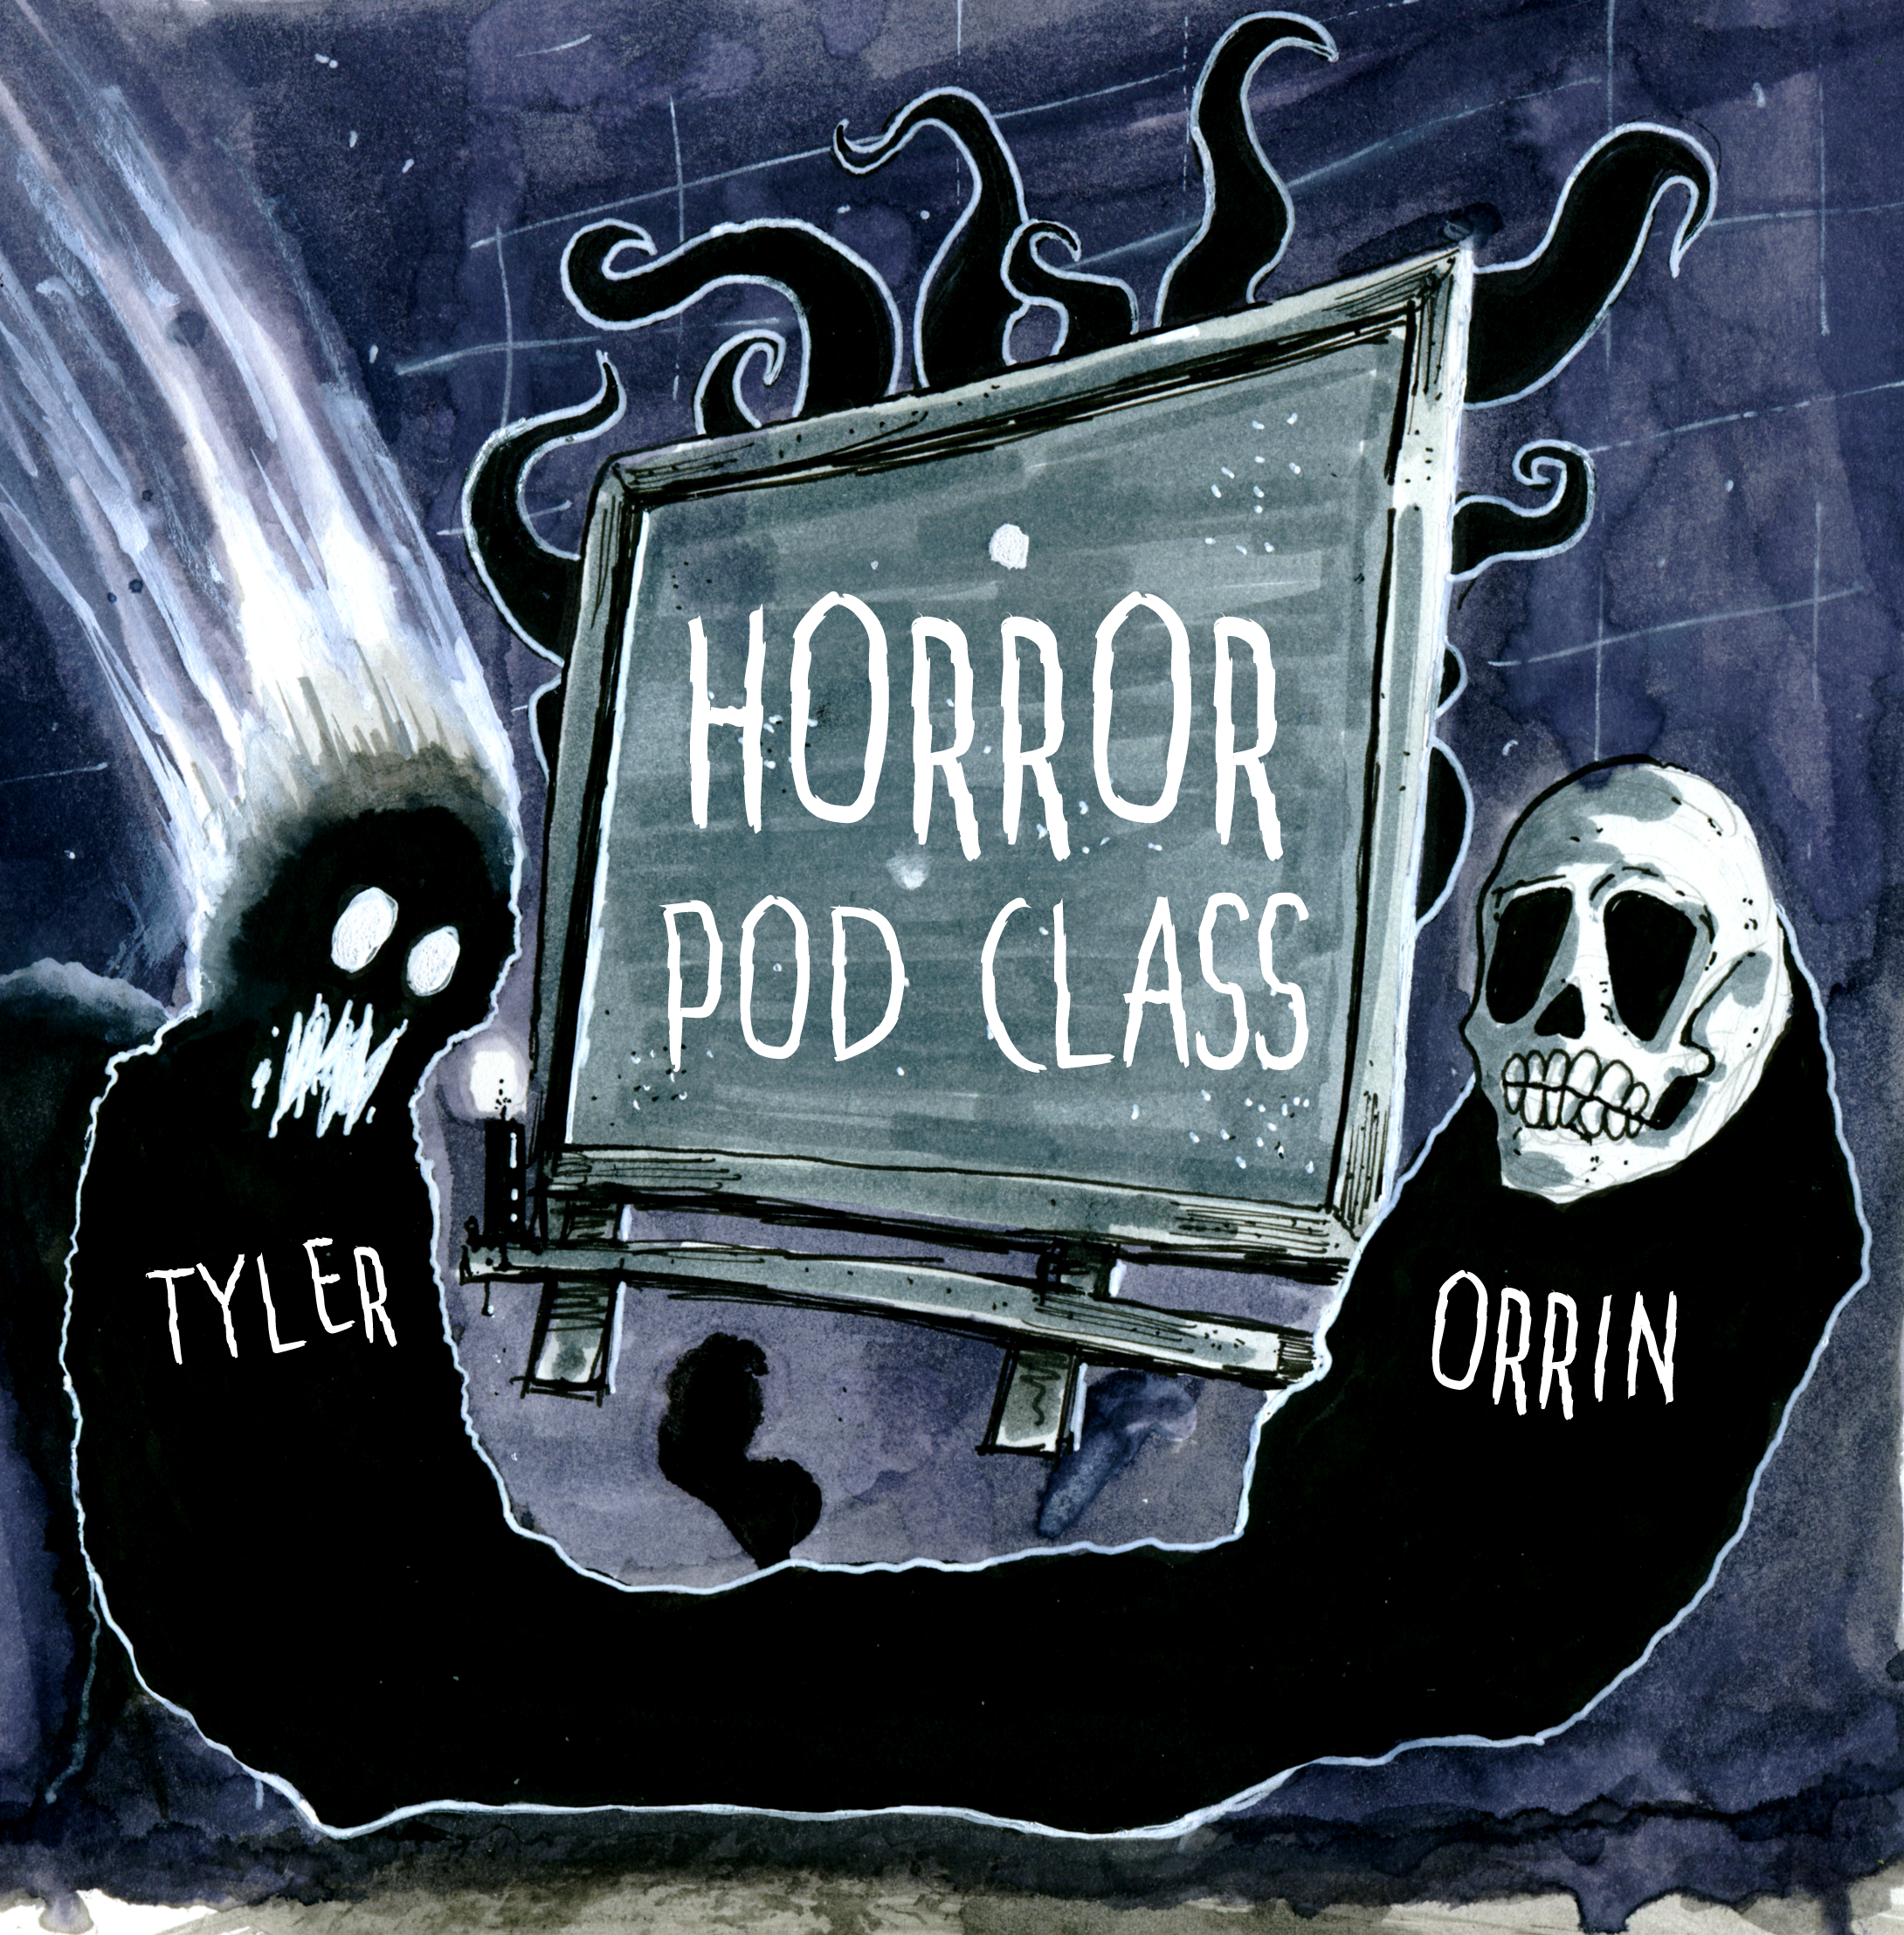 The Horror Pod Class show art